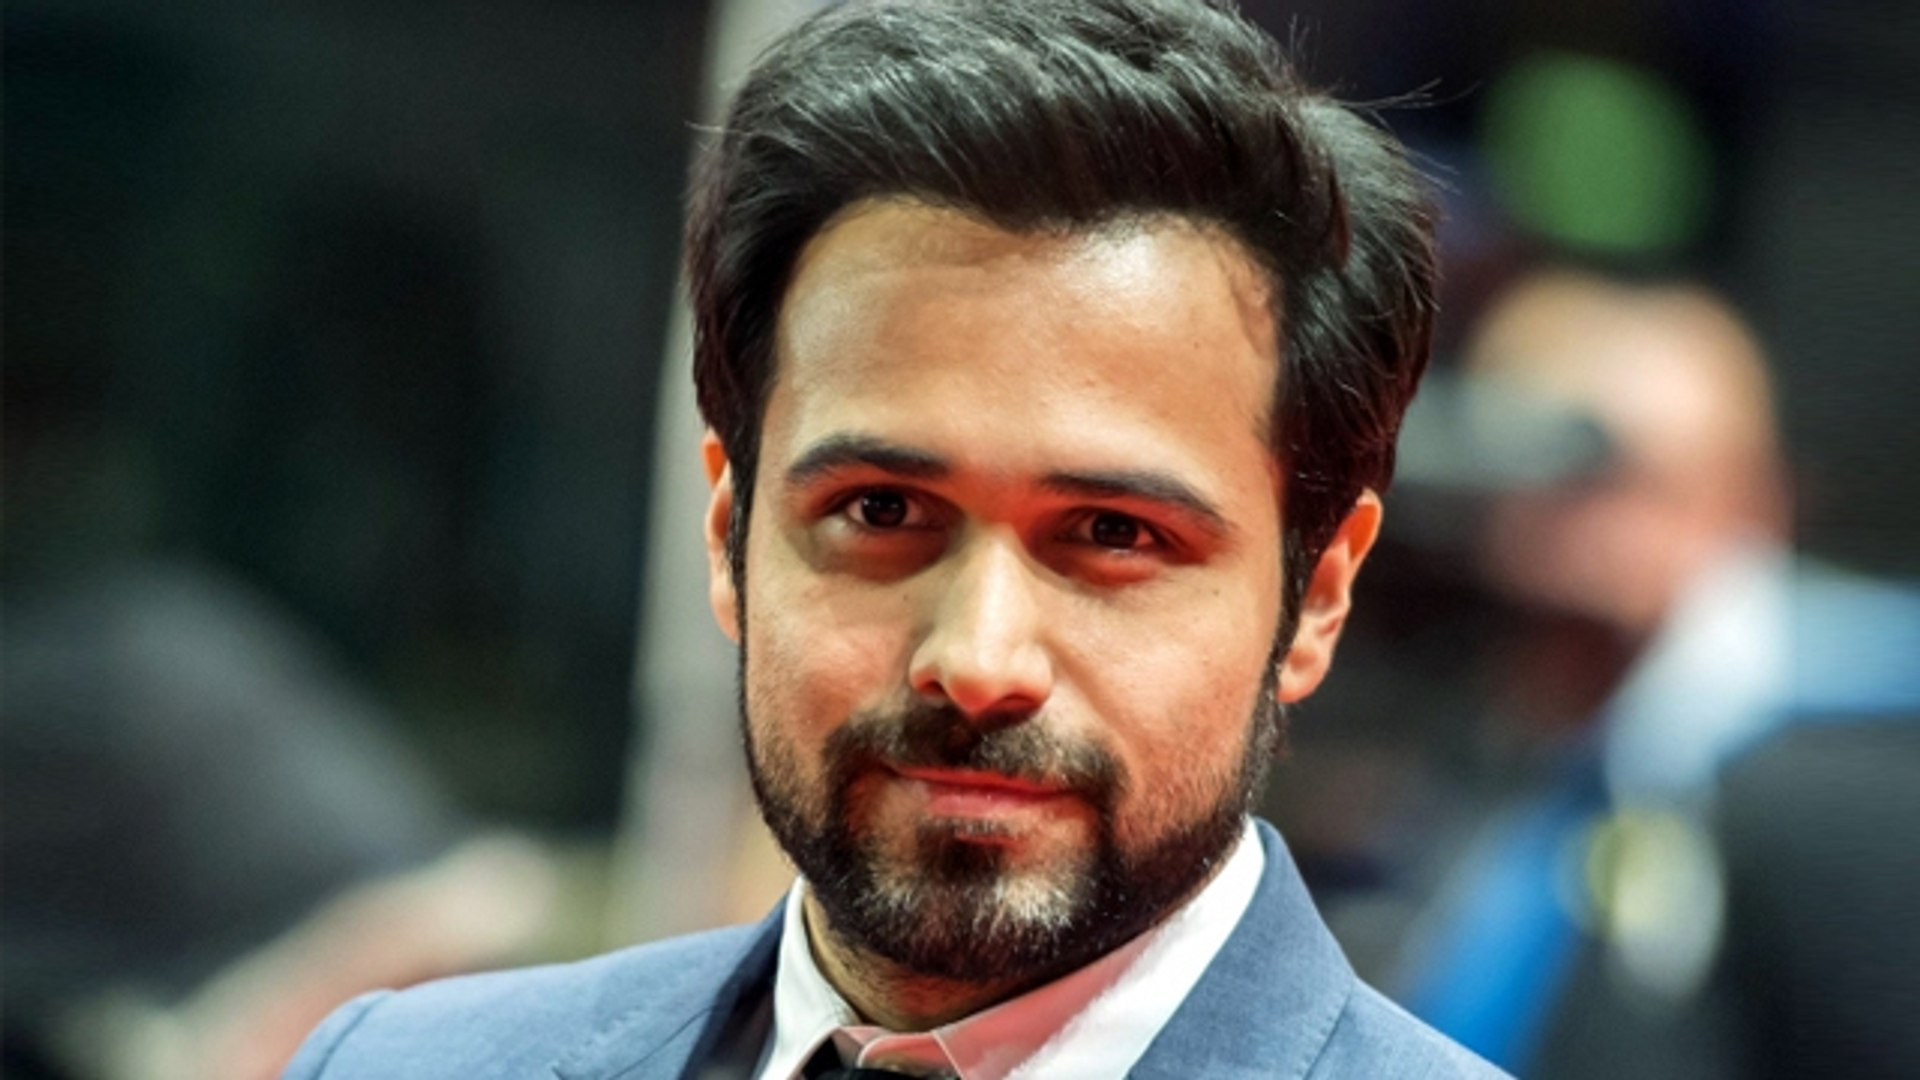 Emraan Hashmi Makes Porn Movies